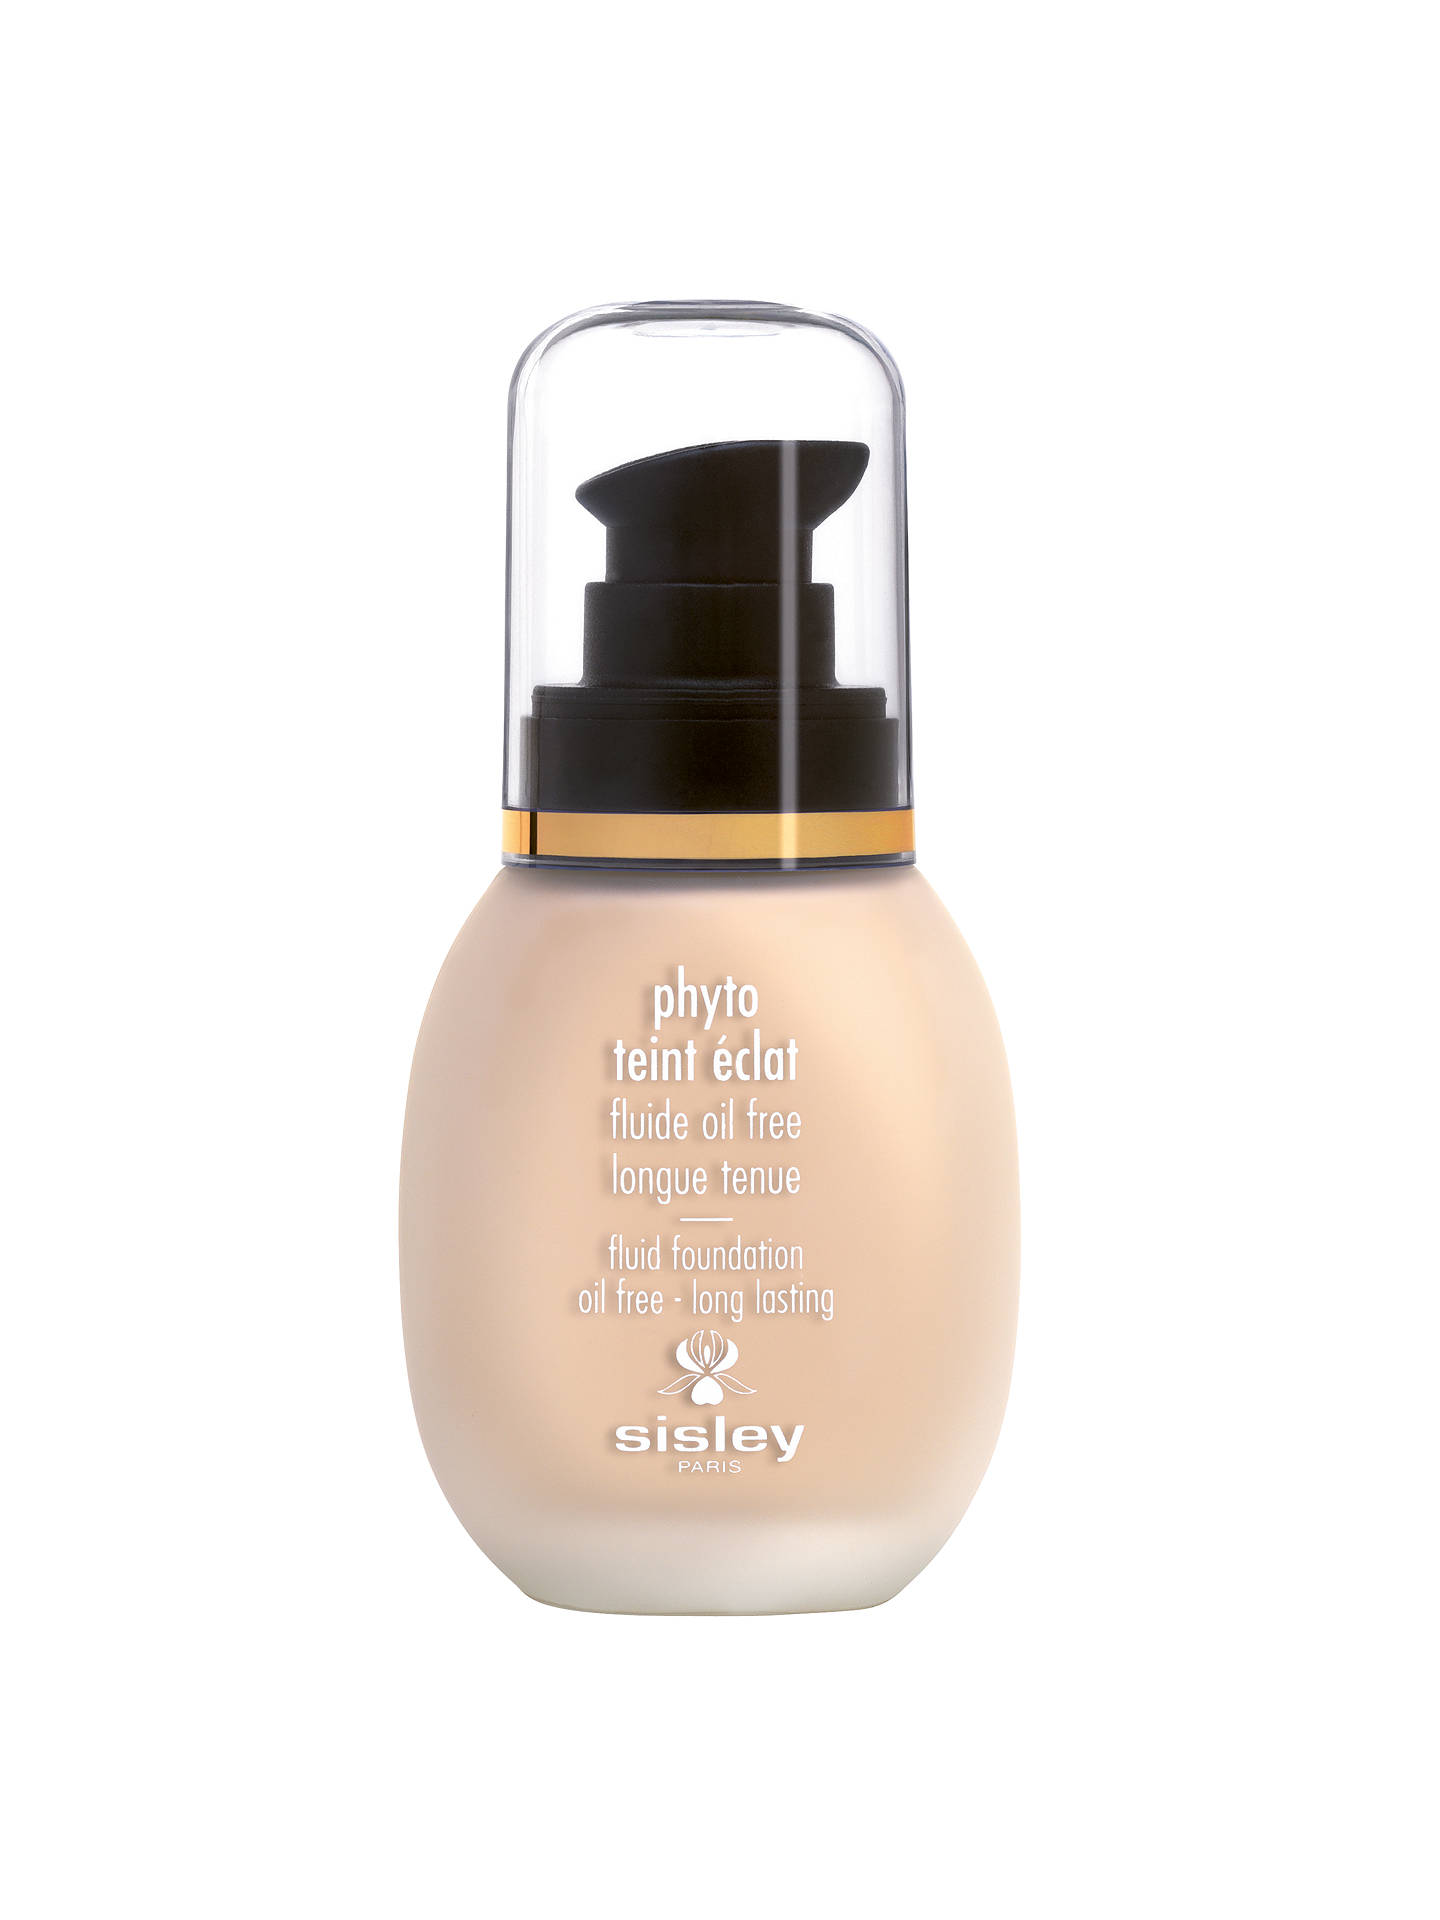 BuySisley Phyto-Teint Eclat Foundation1, 30ml, 1 Ivory Online at johnlewis.com